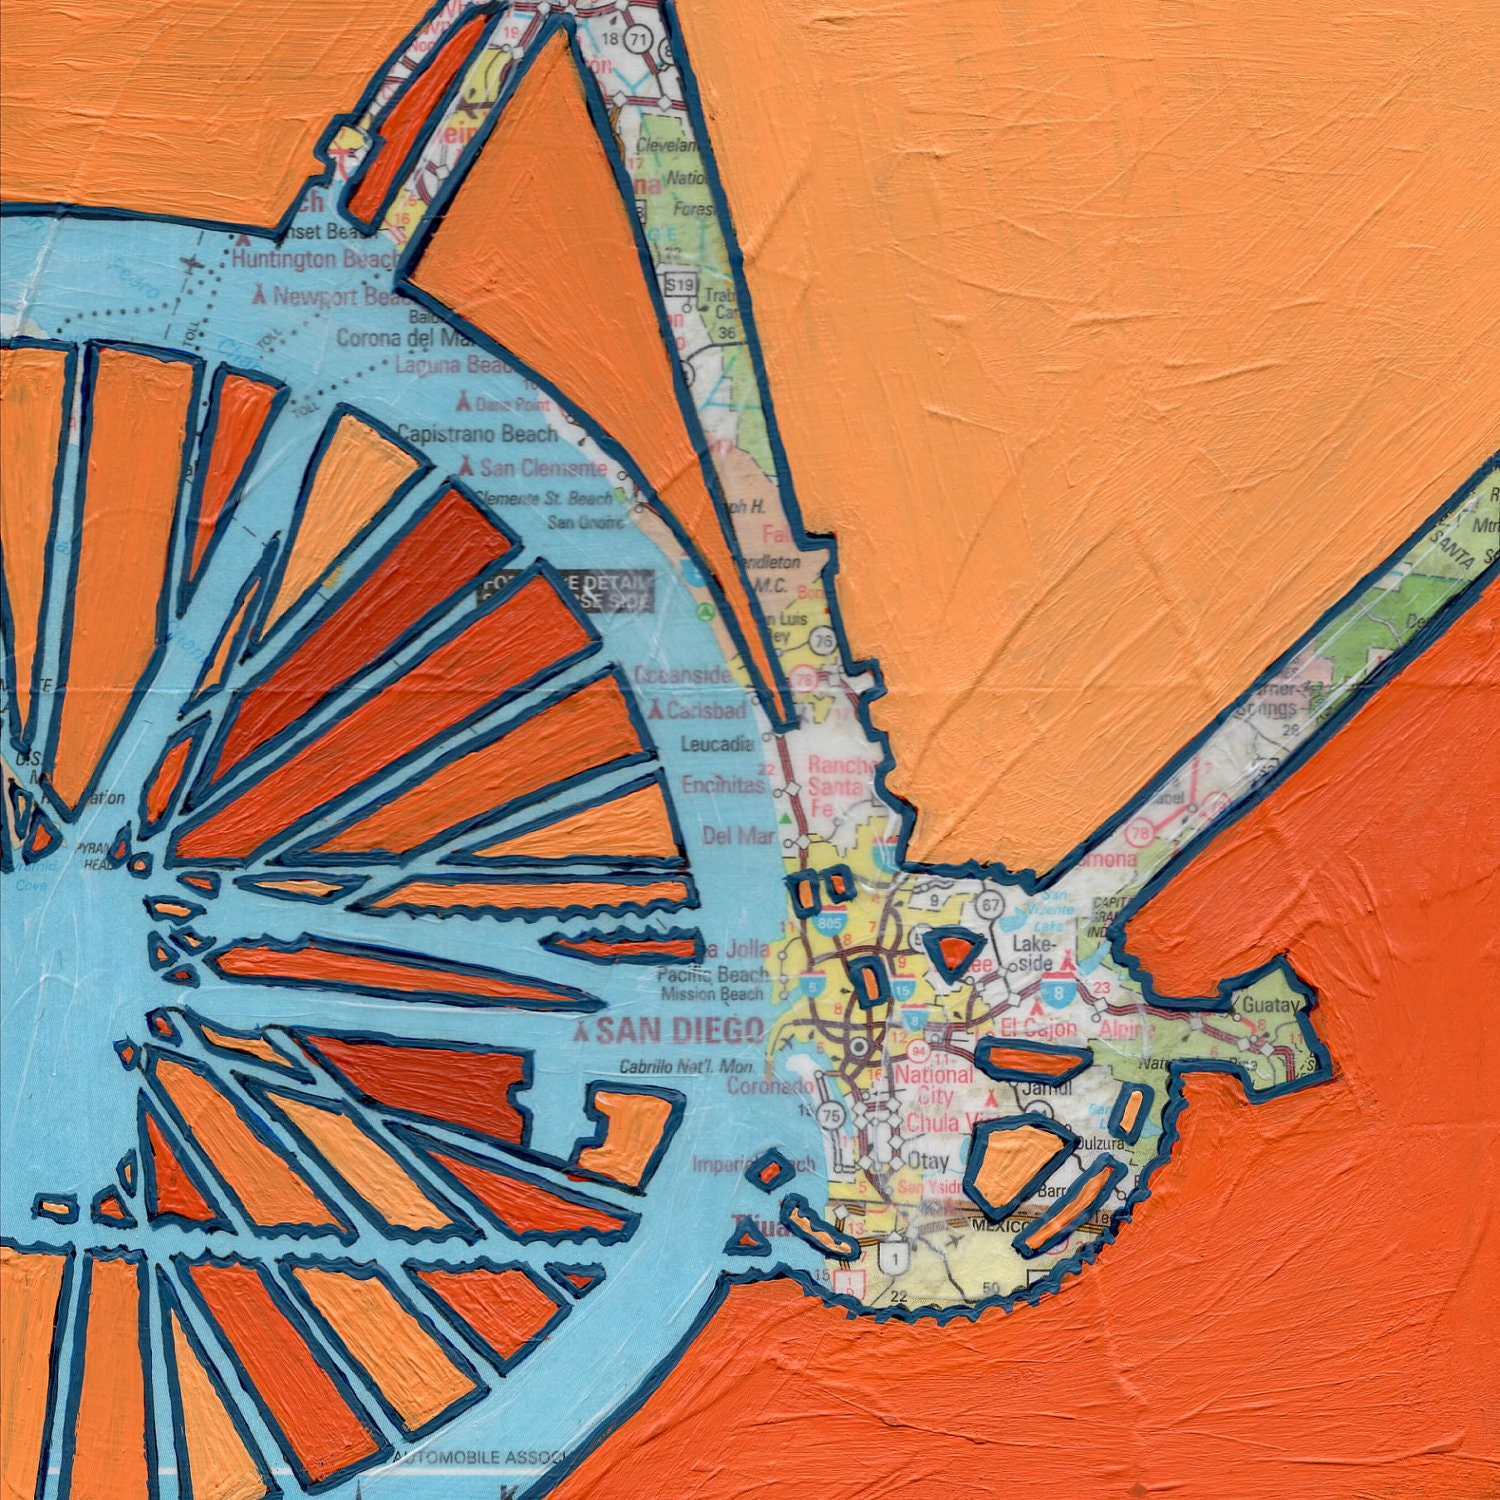 Classes + Workshops – San Diego County Bicycle Coalition